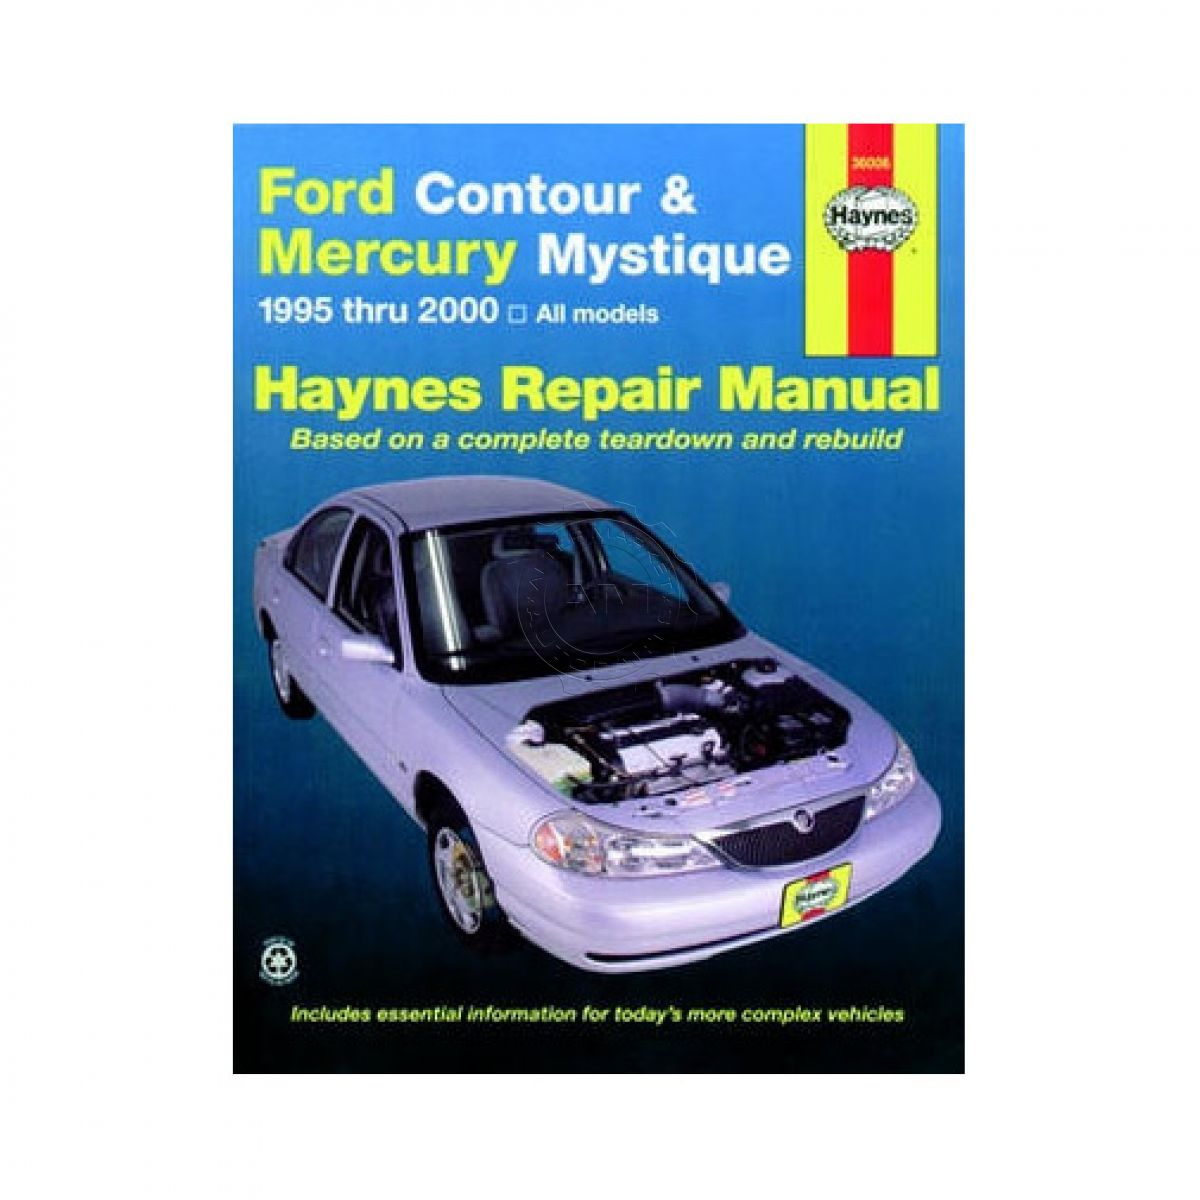 Repair Manual for 95 96 97-00 Ford Contour Mercury Mystique